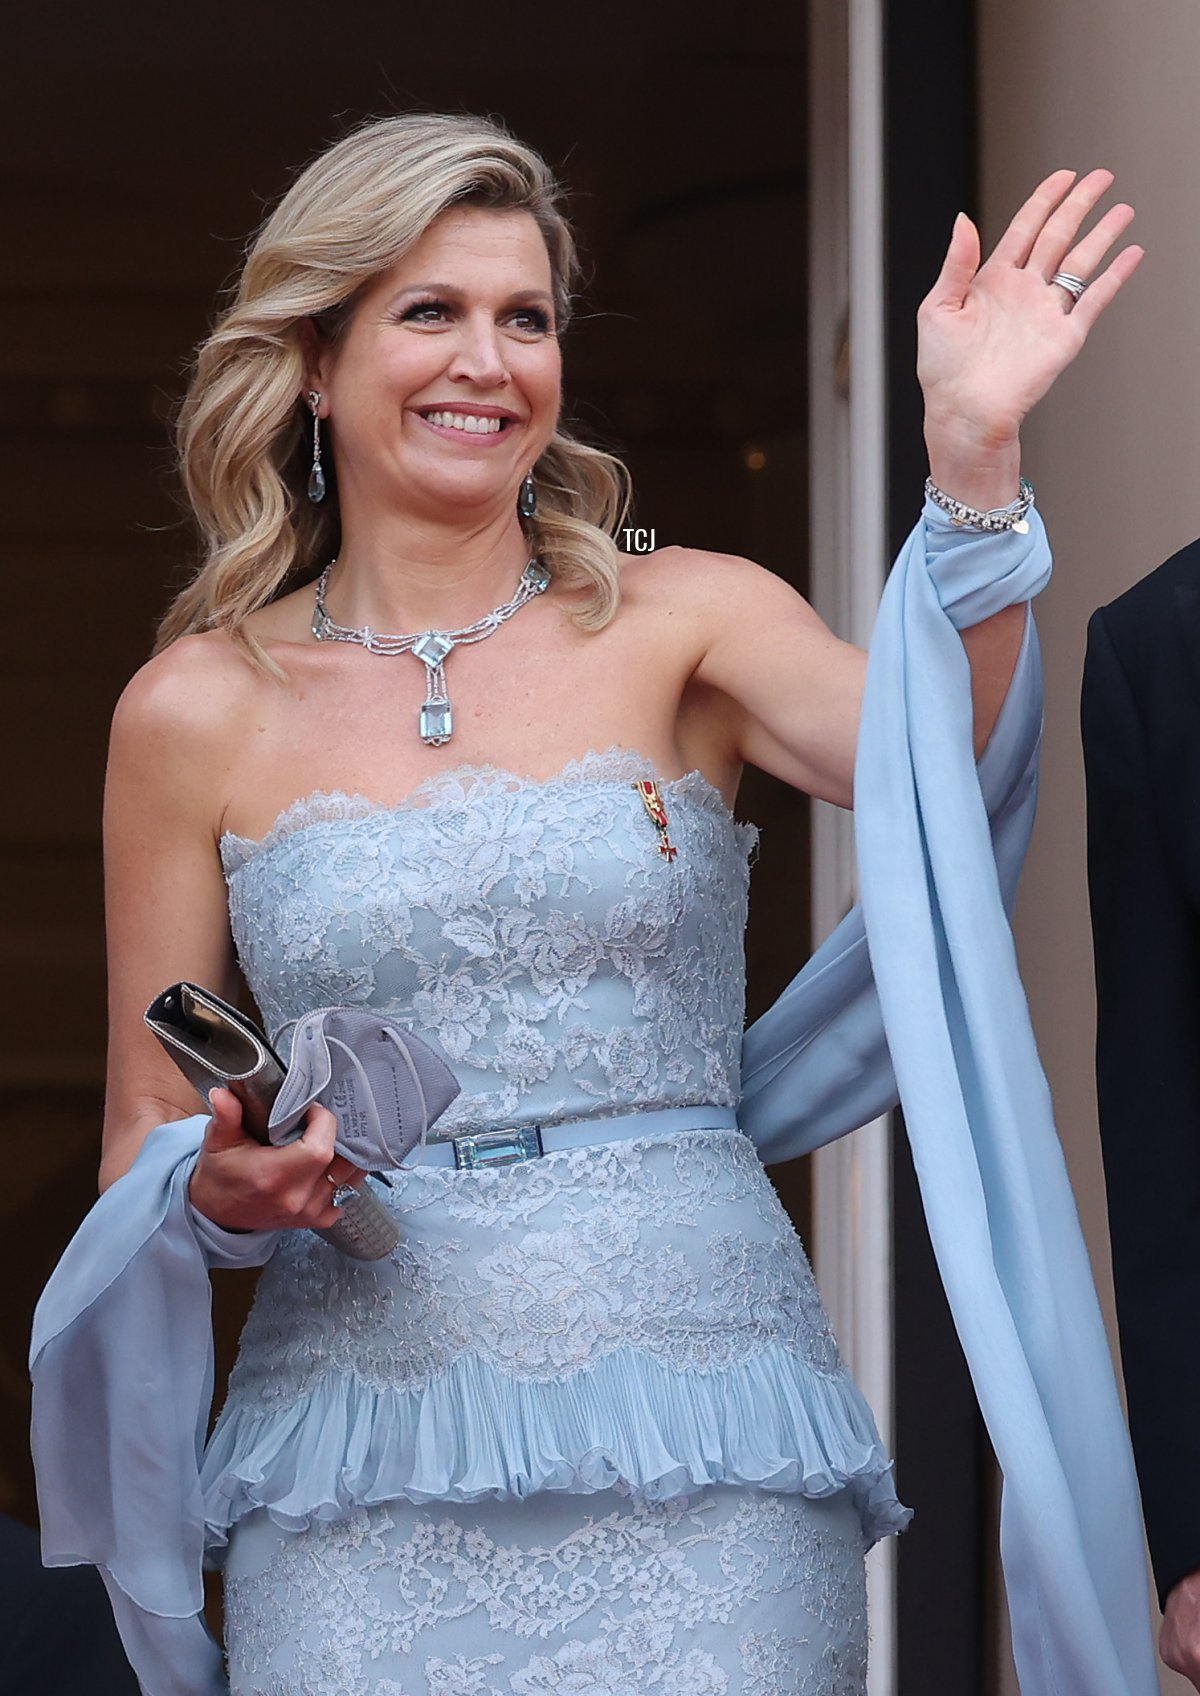 King Willem-Alexander and Queen Maxima of the Netherlands arrive at the Konzerthaus am Gendarmenmarkt on July 06, 2021 in Berlin, Germany